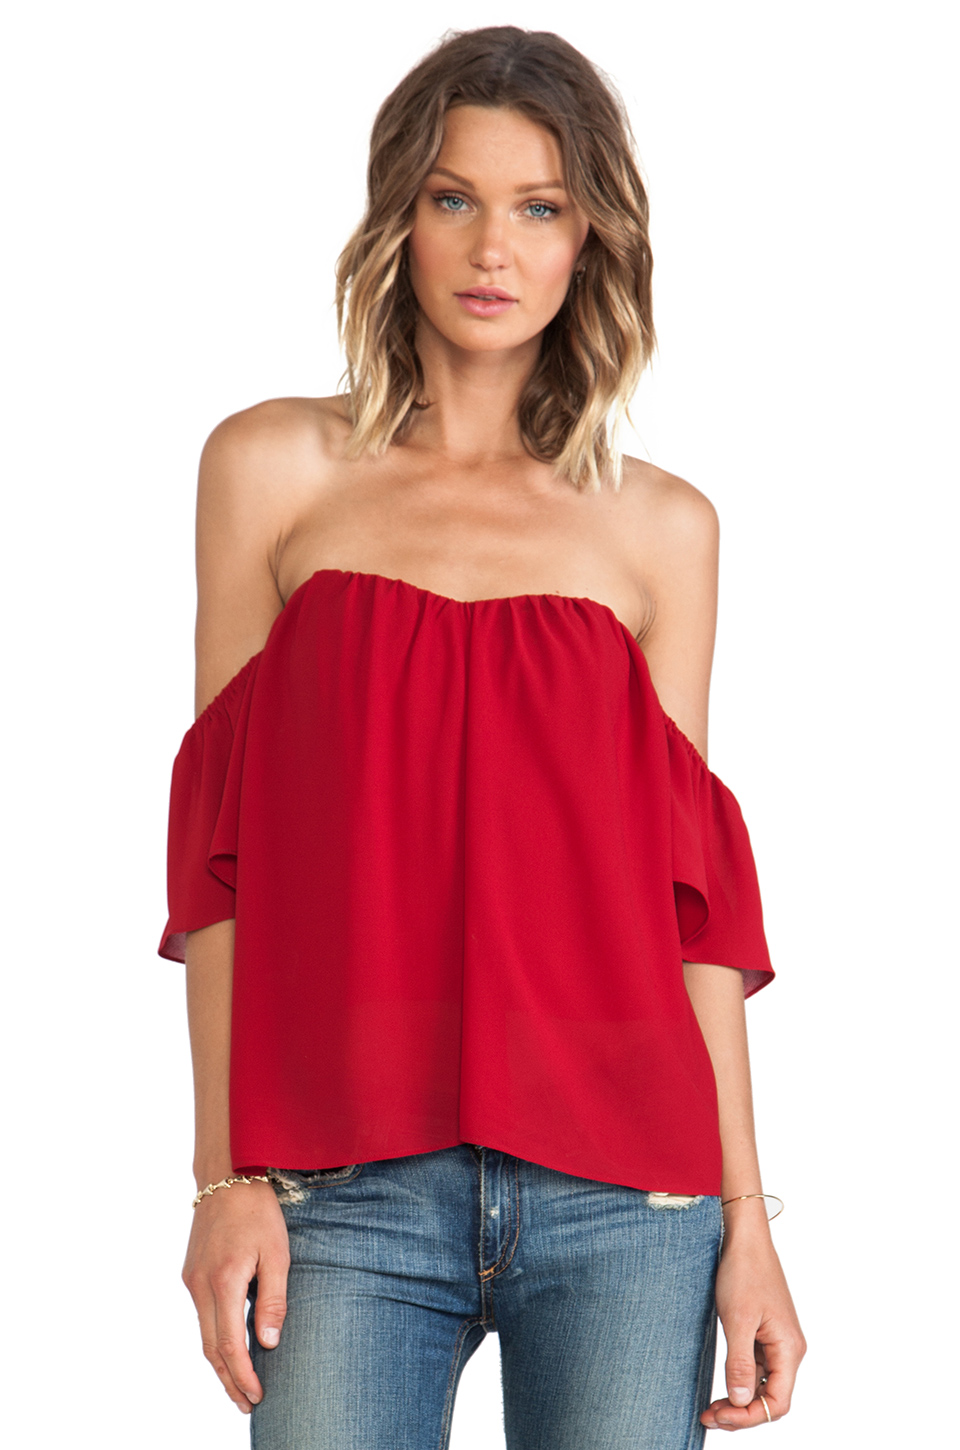 Line & Dot Blonde Ambition Flutter Top in Maroon from REVOLVEclothing.com